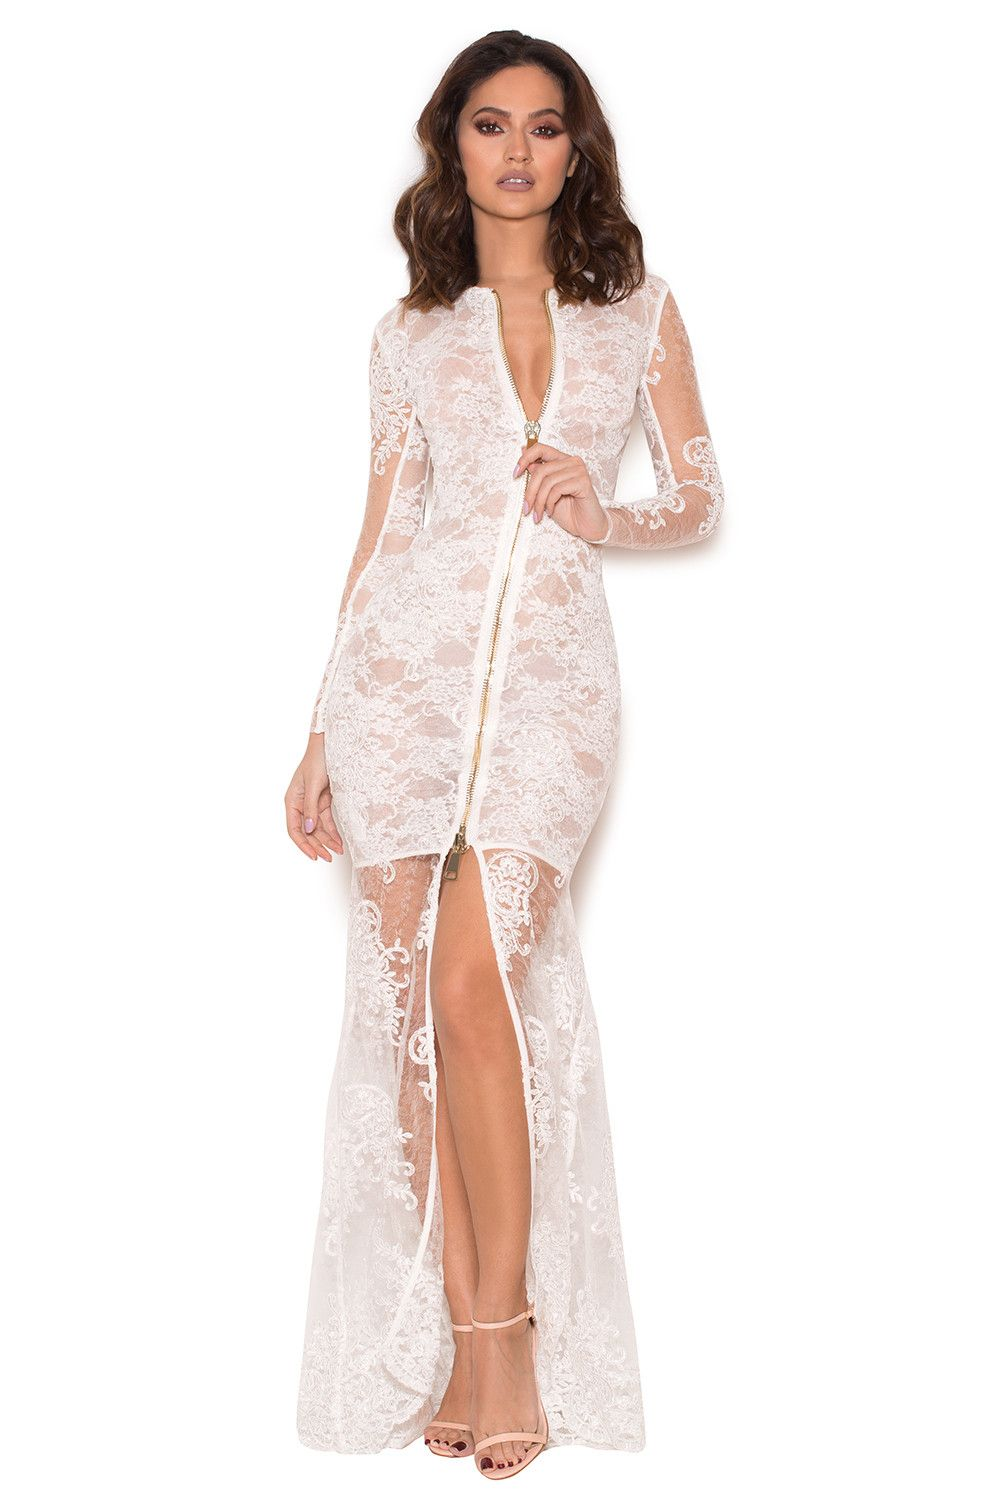 Kamali' White Sheer Lace Maxi Dress - SALE | ML Lace Dresses ...